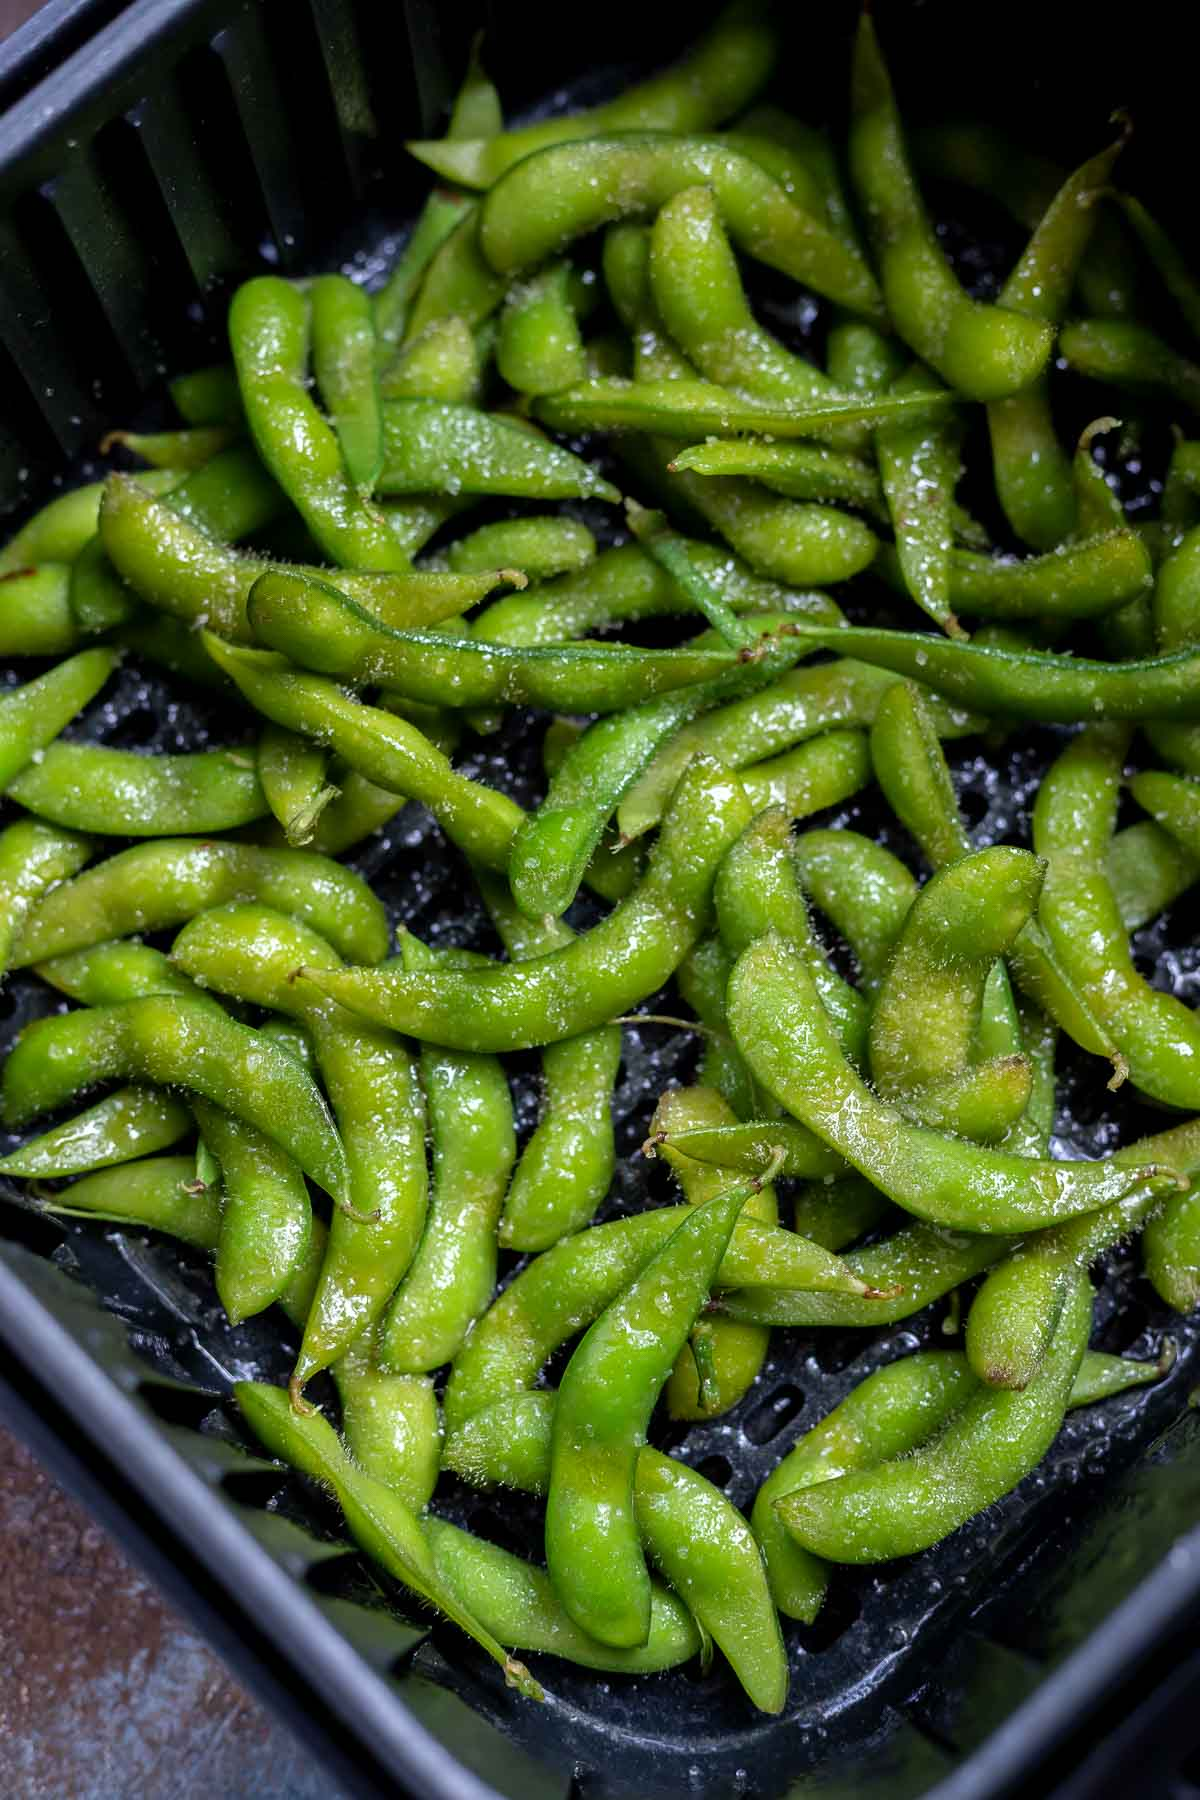 uncooked edamame in air fryer basket